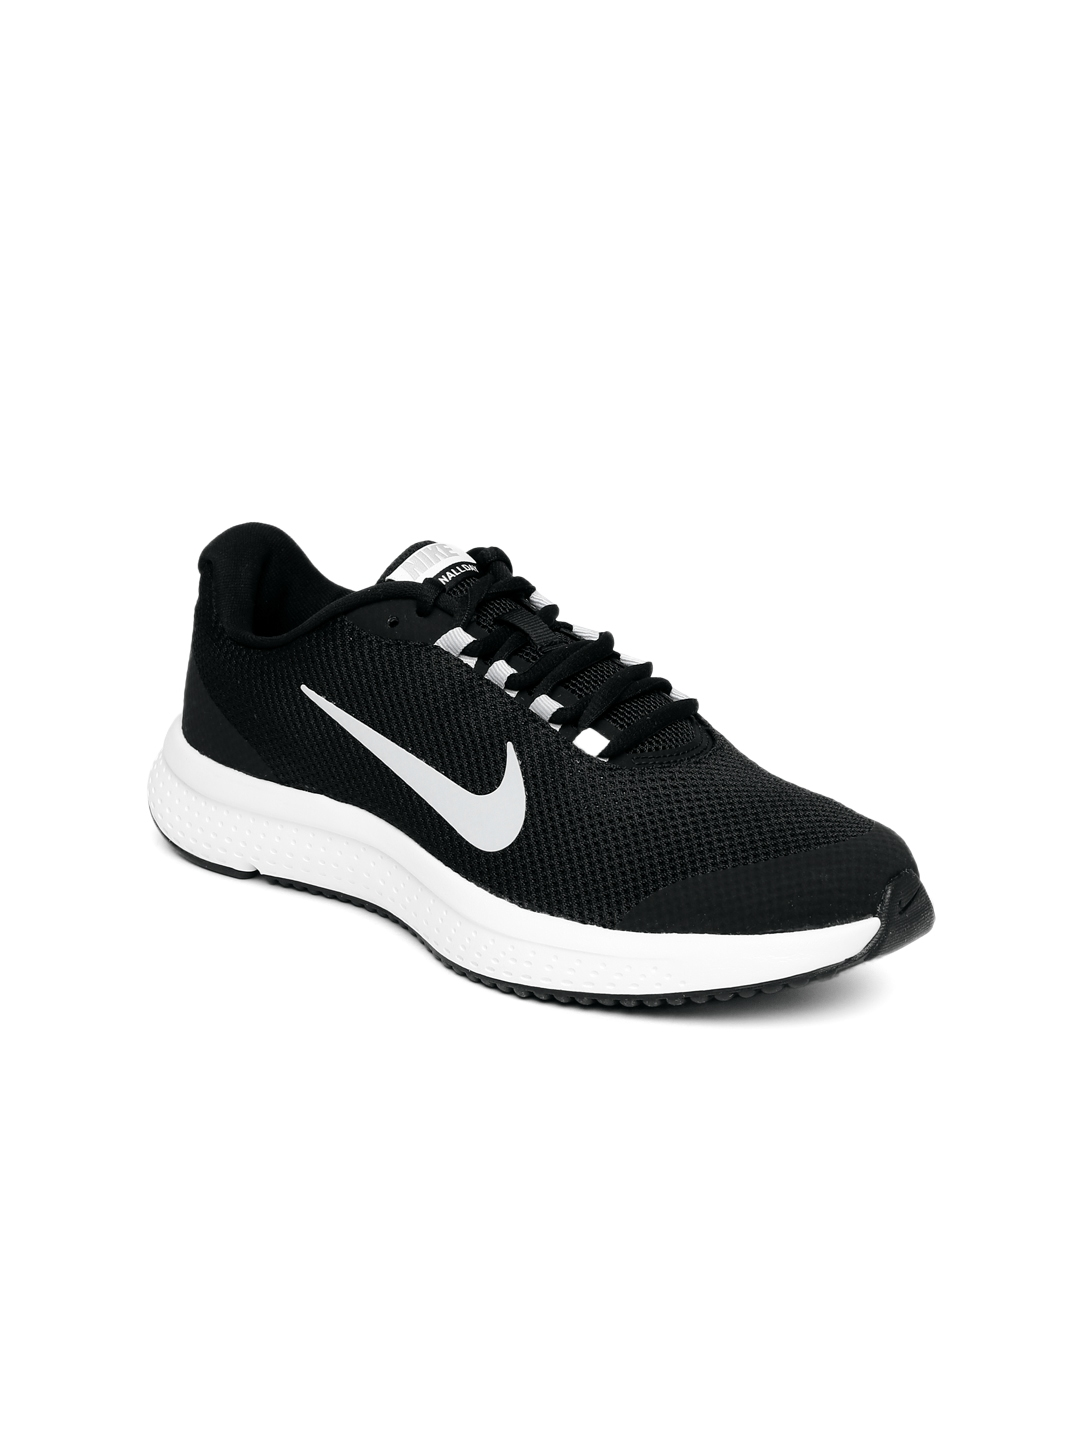 nike shoes sale chennai